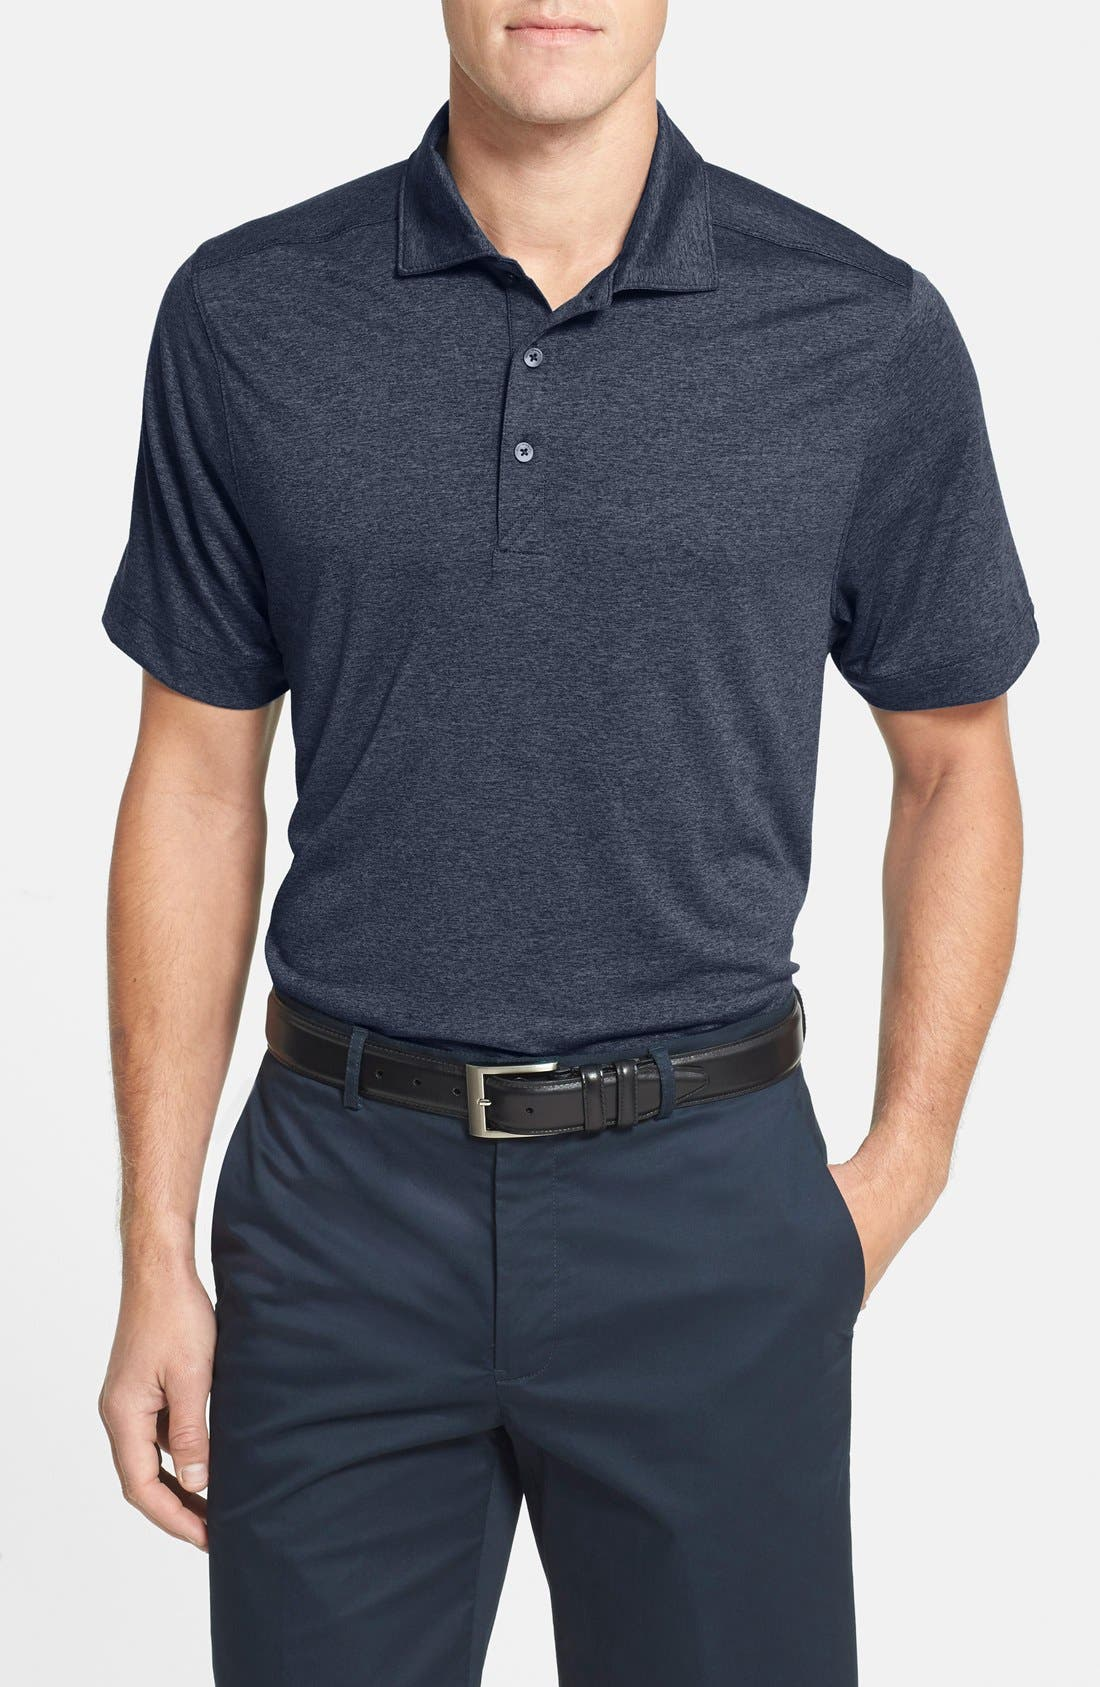 CUTTER & BUCK Chelan DryTec Moisture Wicking Polo